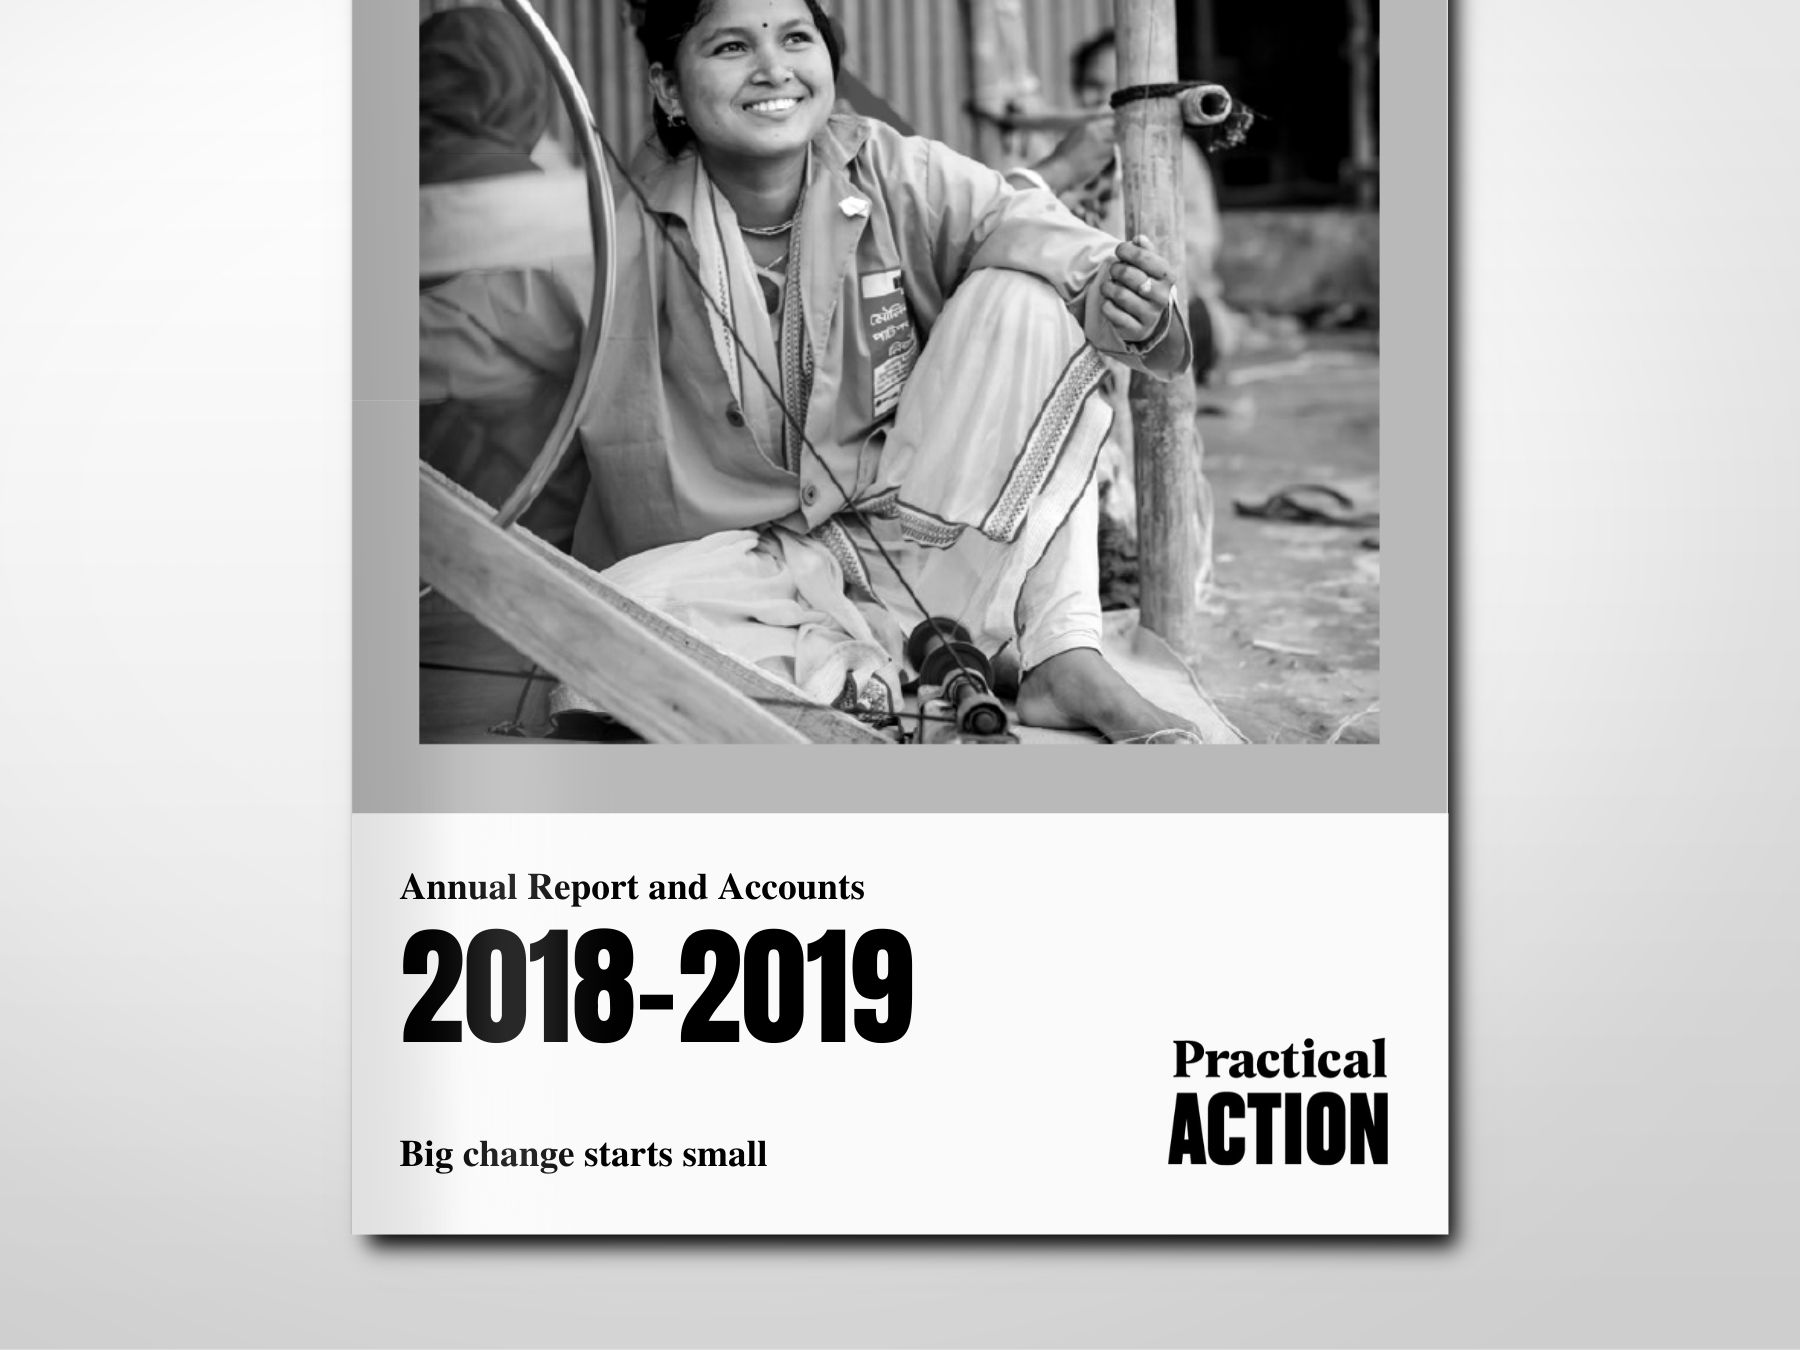 The front cover of Practical Action's 2018-2019 annual report featuring a photo of a young Nepali woman sewing.